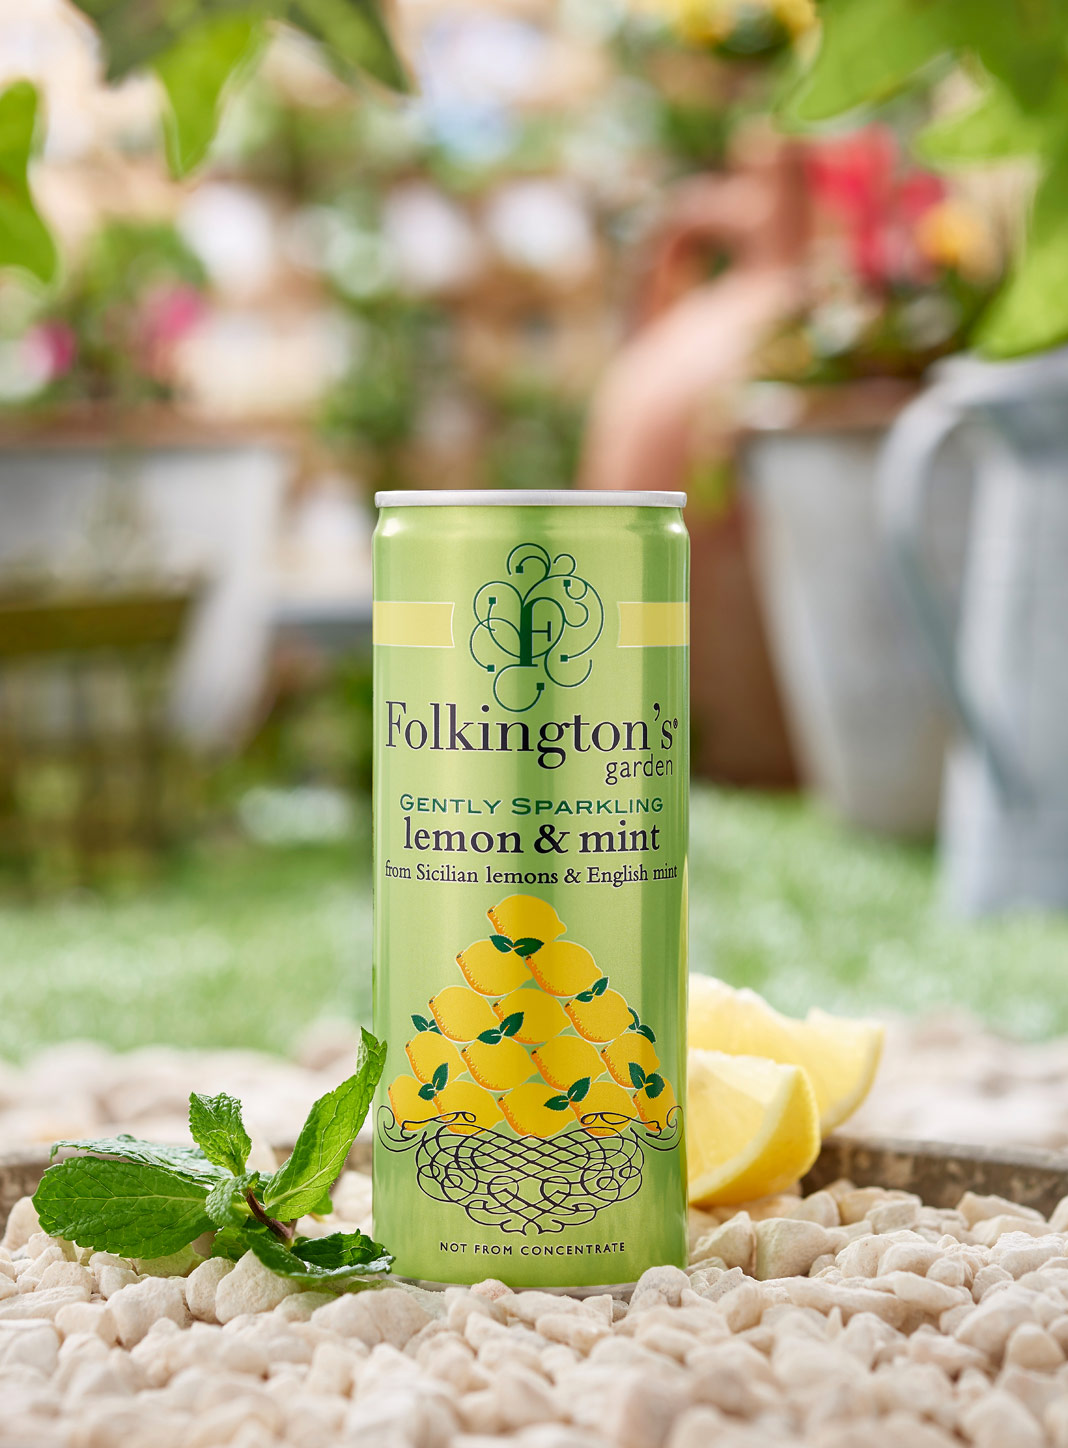 Folkington Garden Range Lemon & Mint